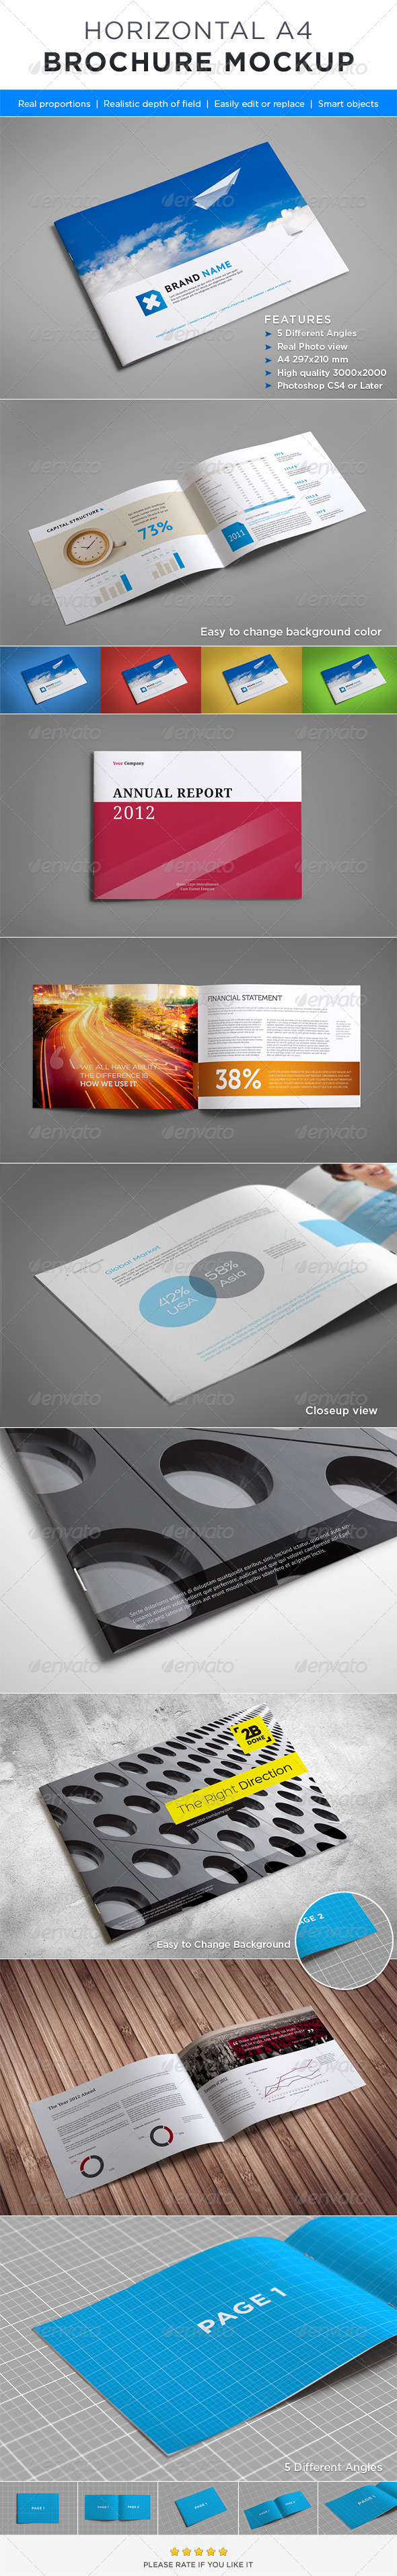 Horizontal Brochure Mock-up